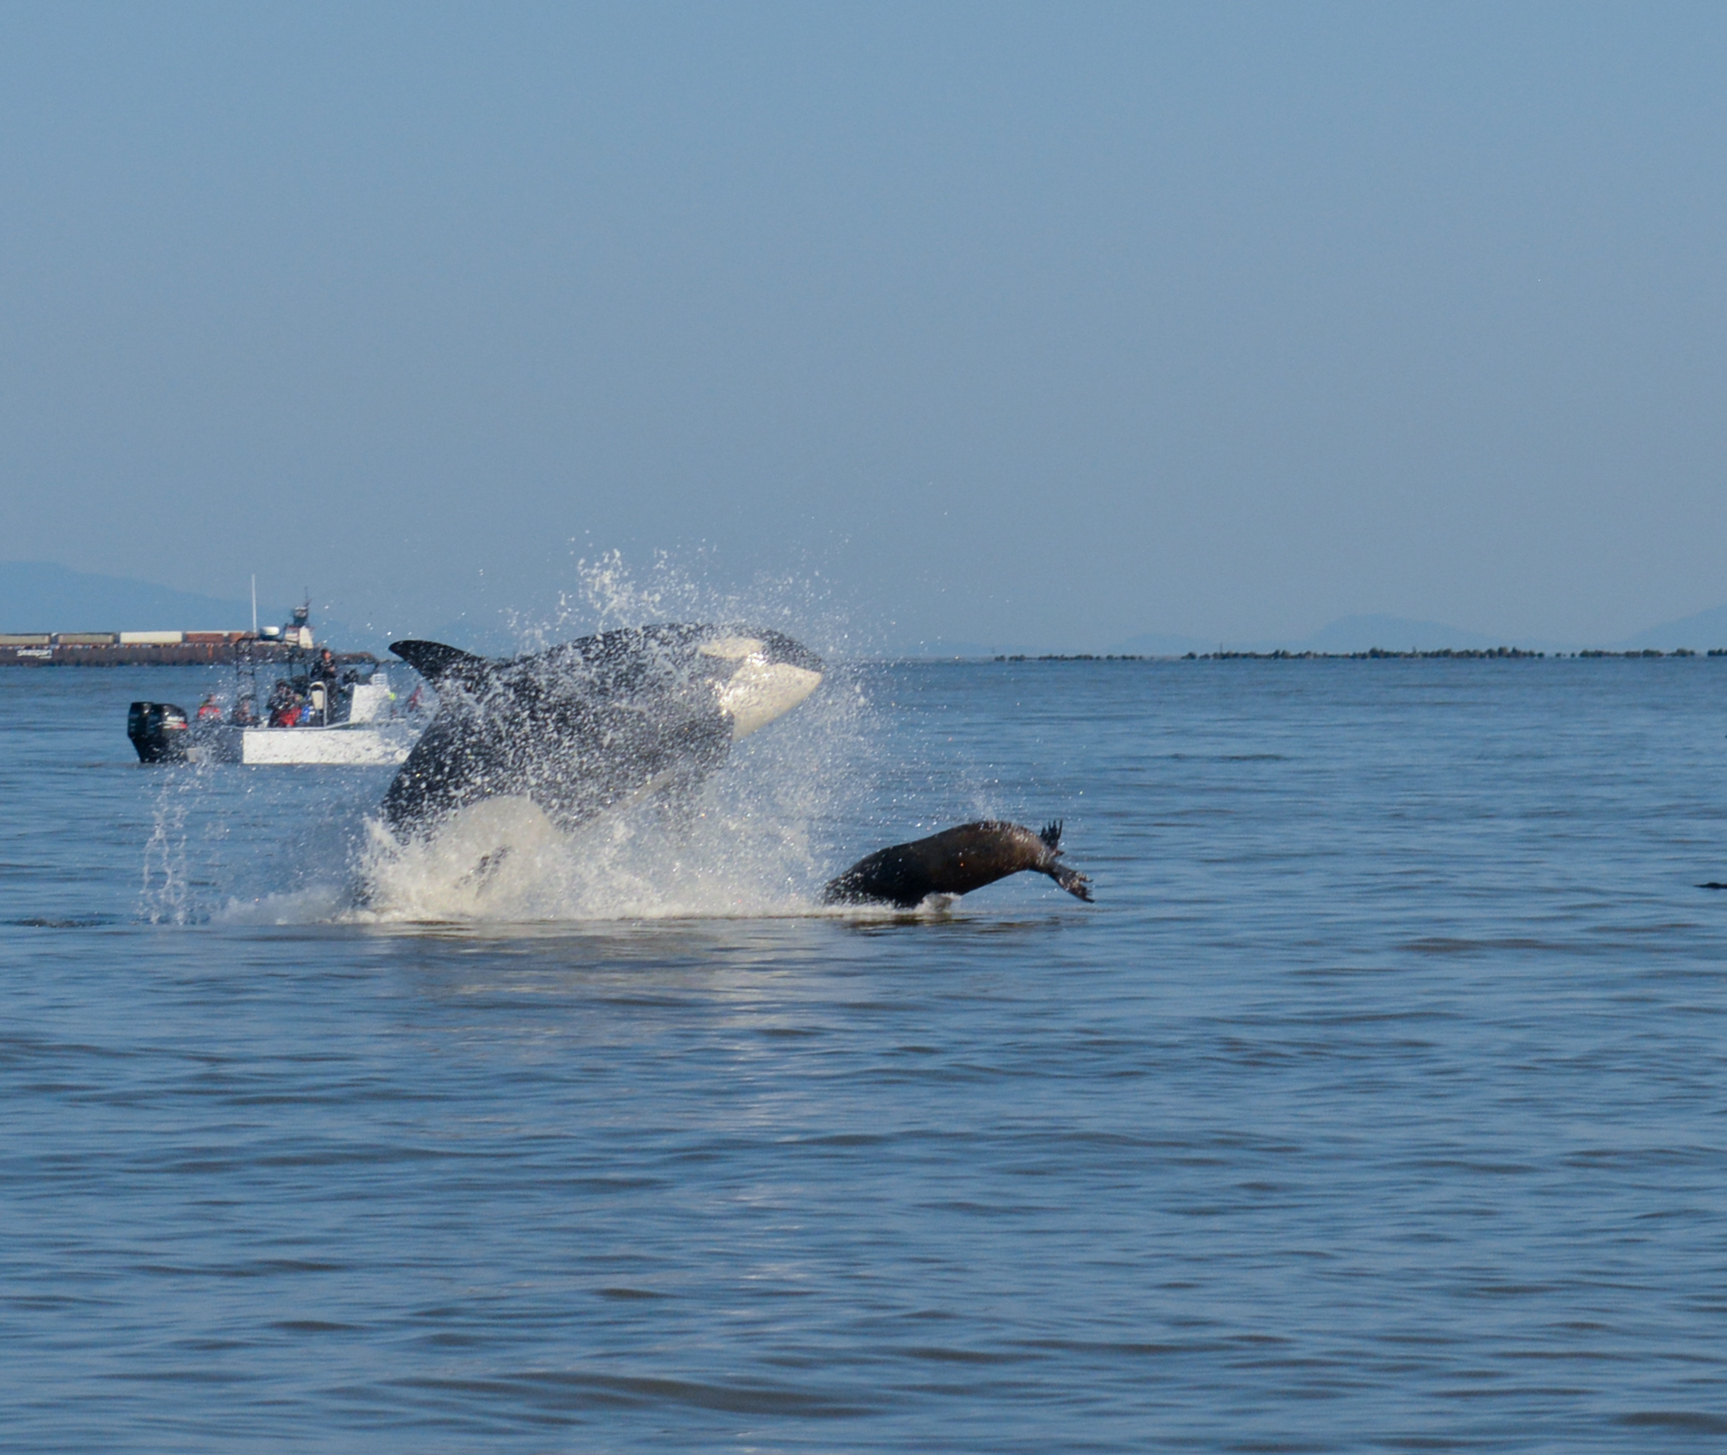 From life to LUNCH, the marine food chain in action! Photo by Lili Simon